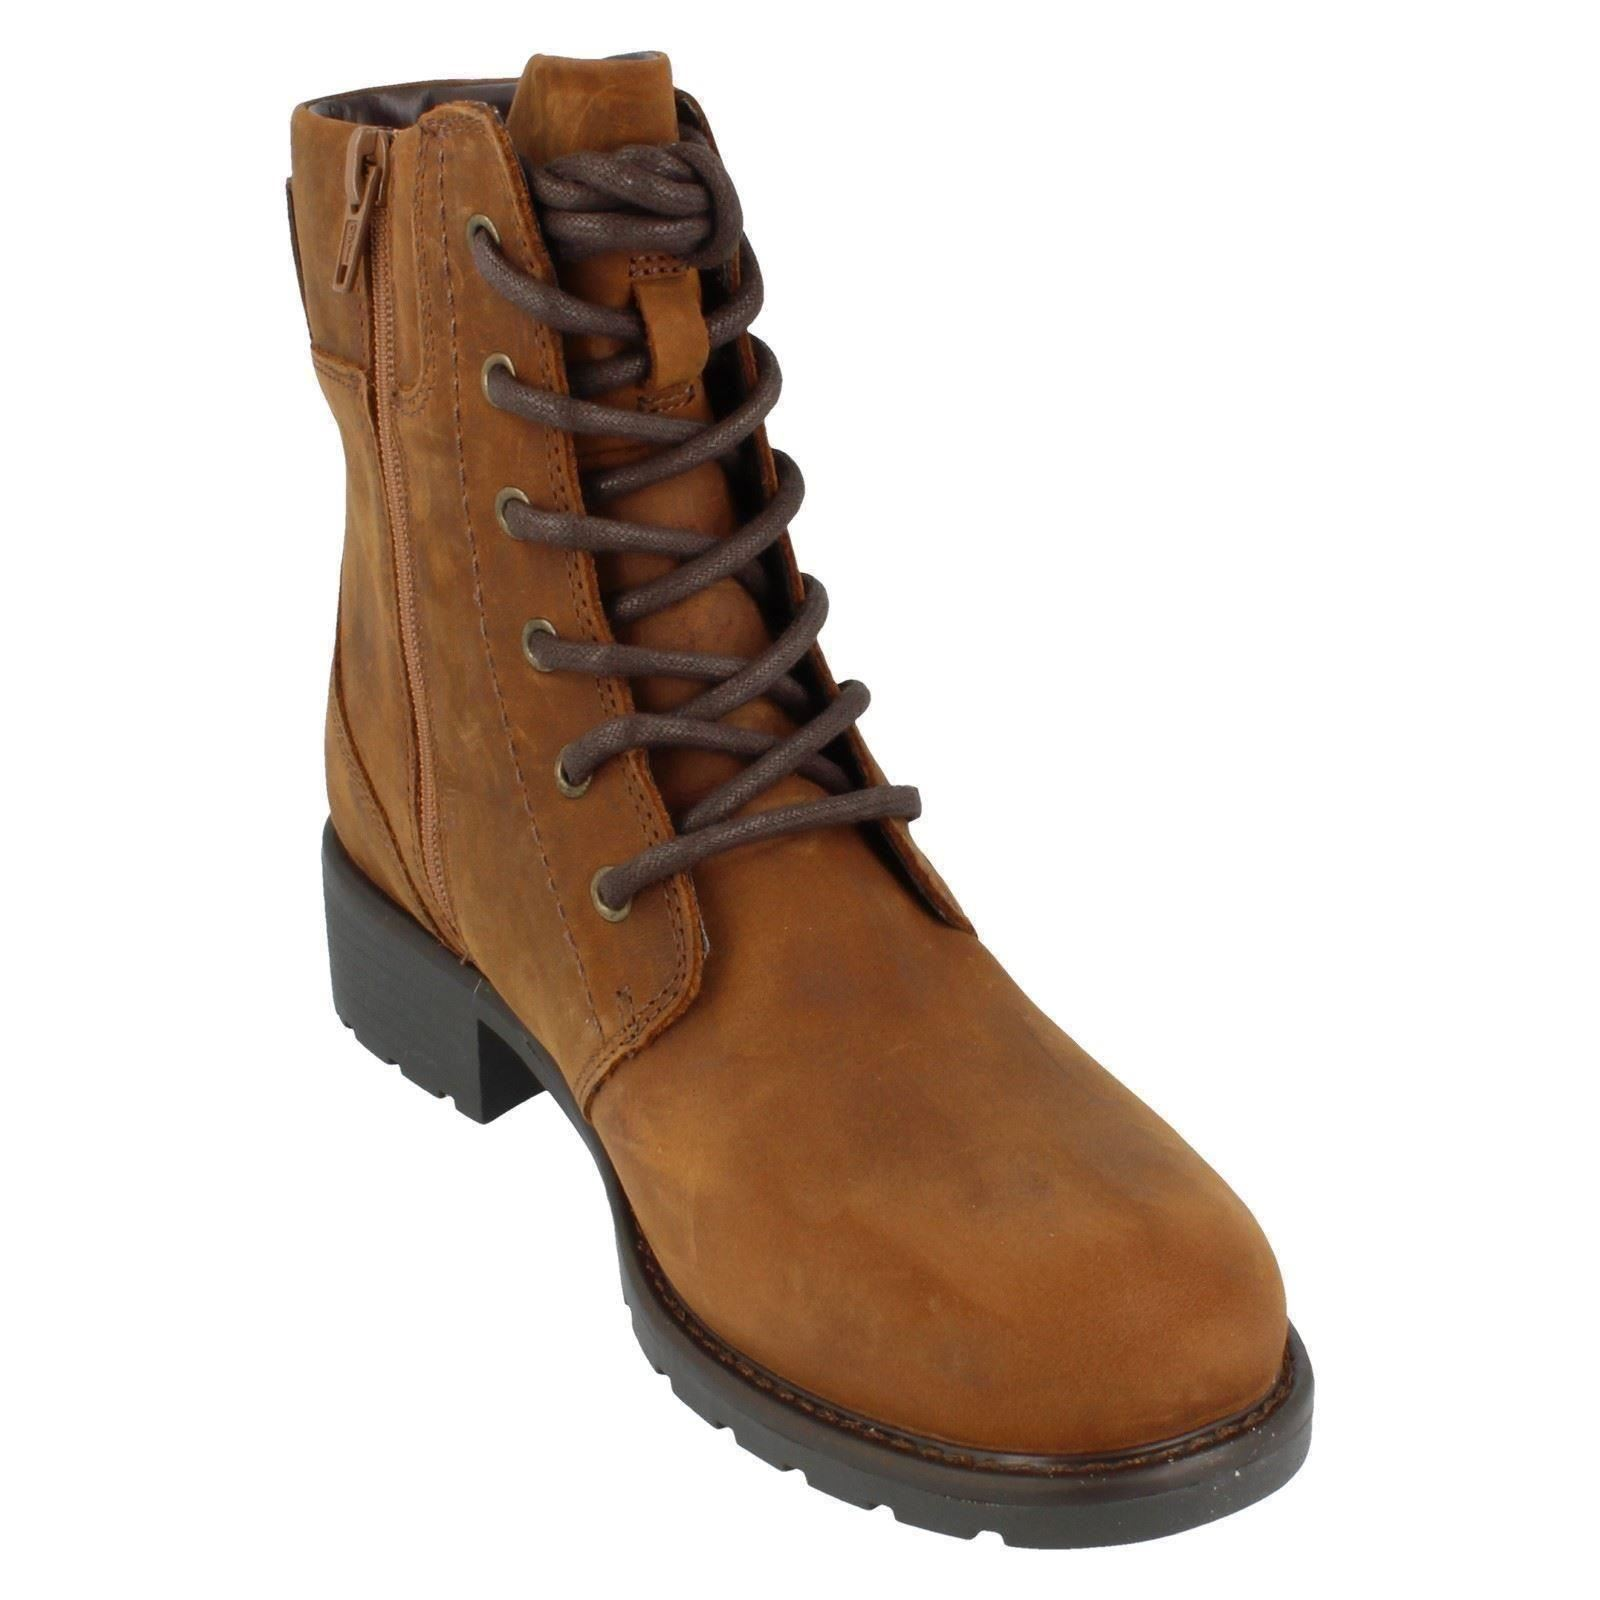 Ladies-Clarks-Casual-Lace-Up-Inside-Zip-Nubuck-Leather-Ankle-Boots-Orinoco-Spice thumbnail 26